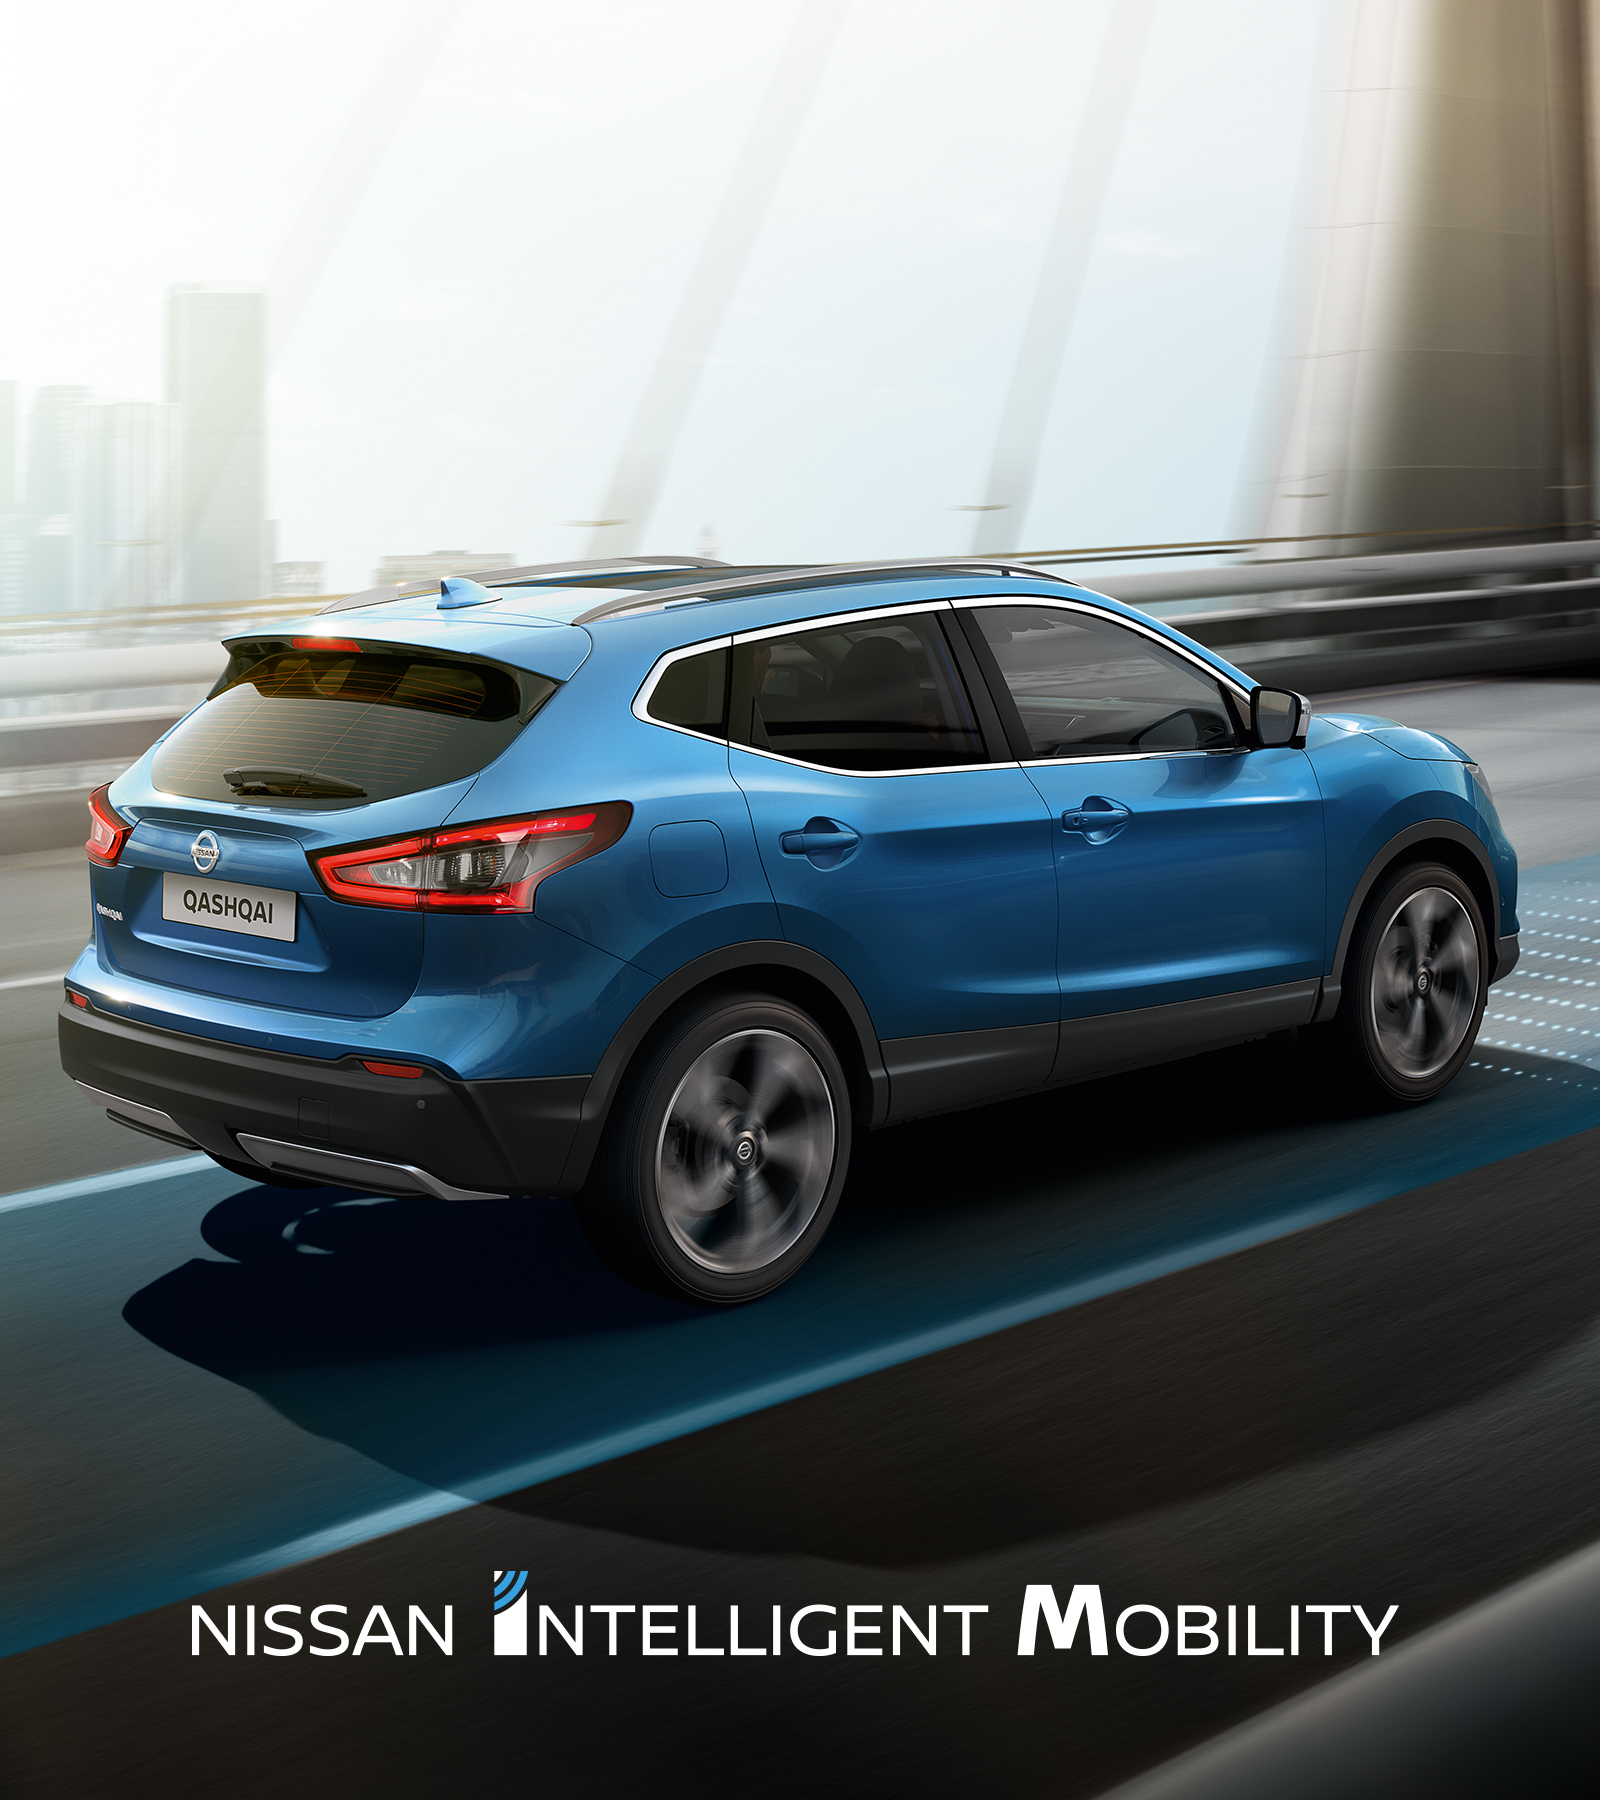 hight resolution of nissan qashqai circulant en ville avec logo nissan intelligent mobility